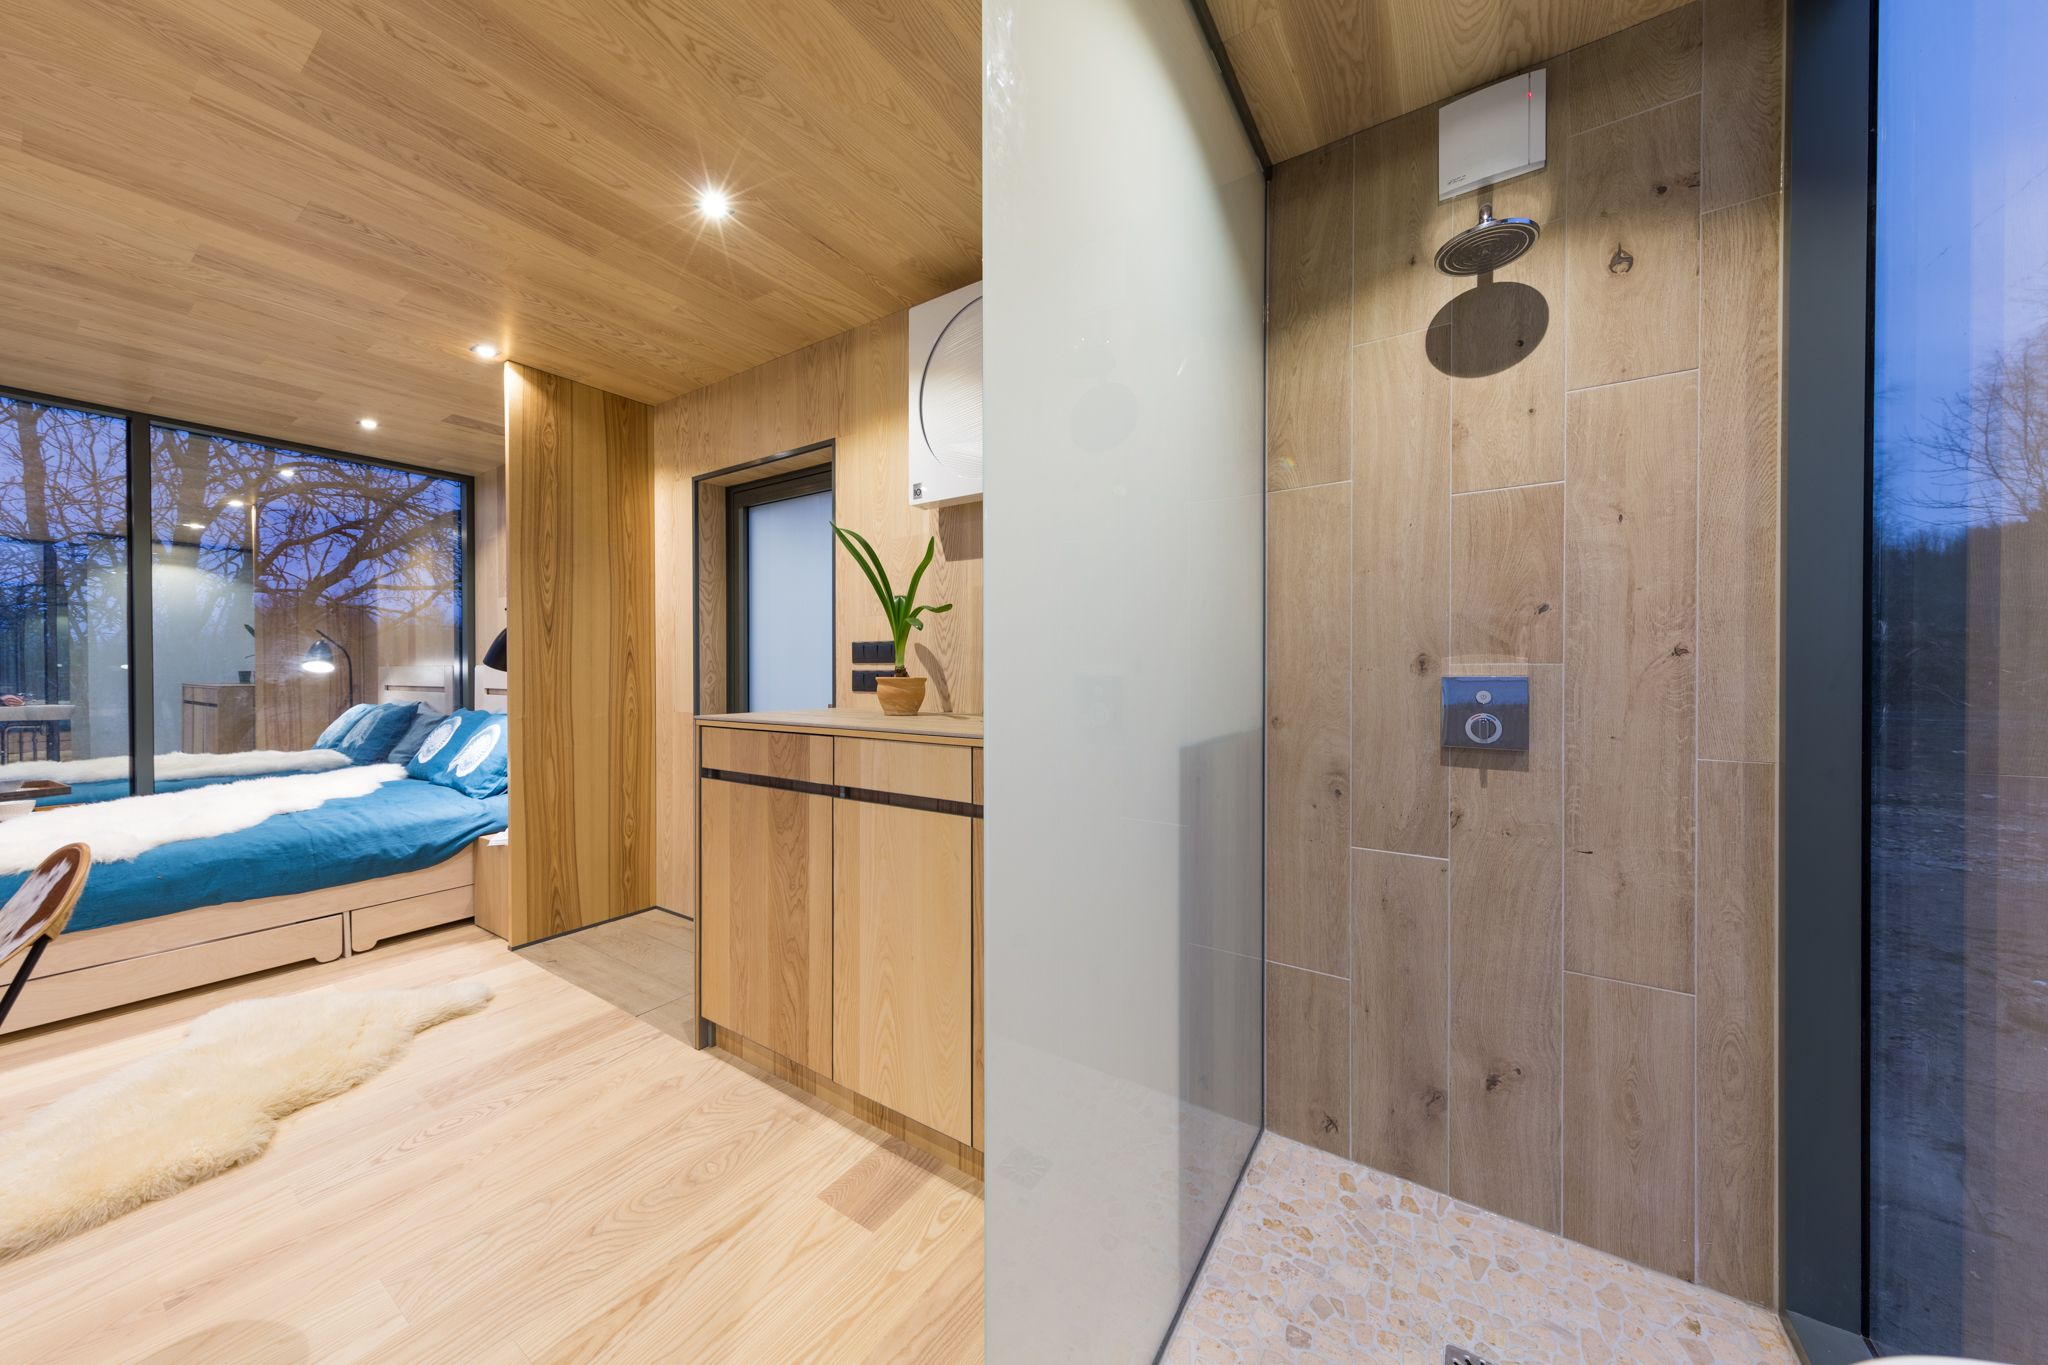 a a d by ood bath tiny houses and spaces